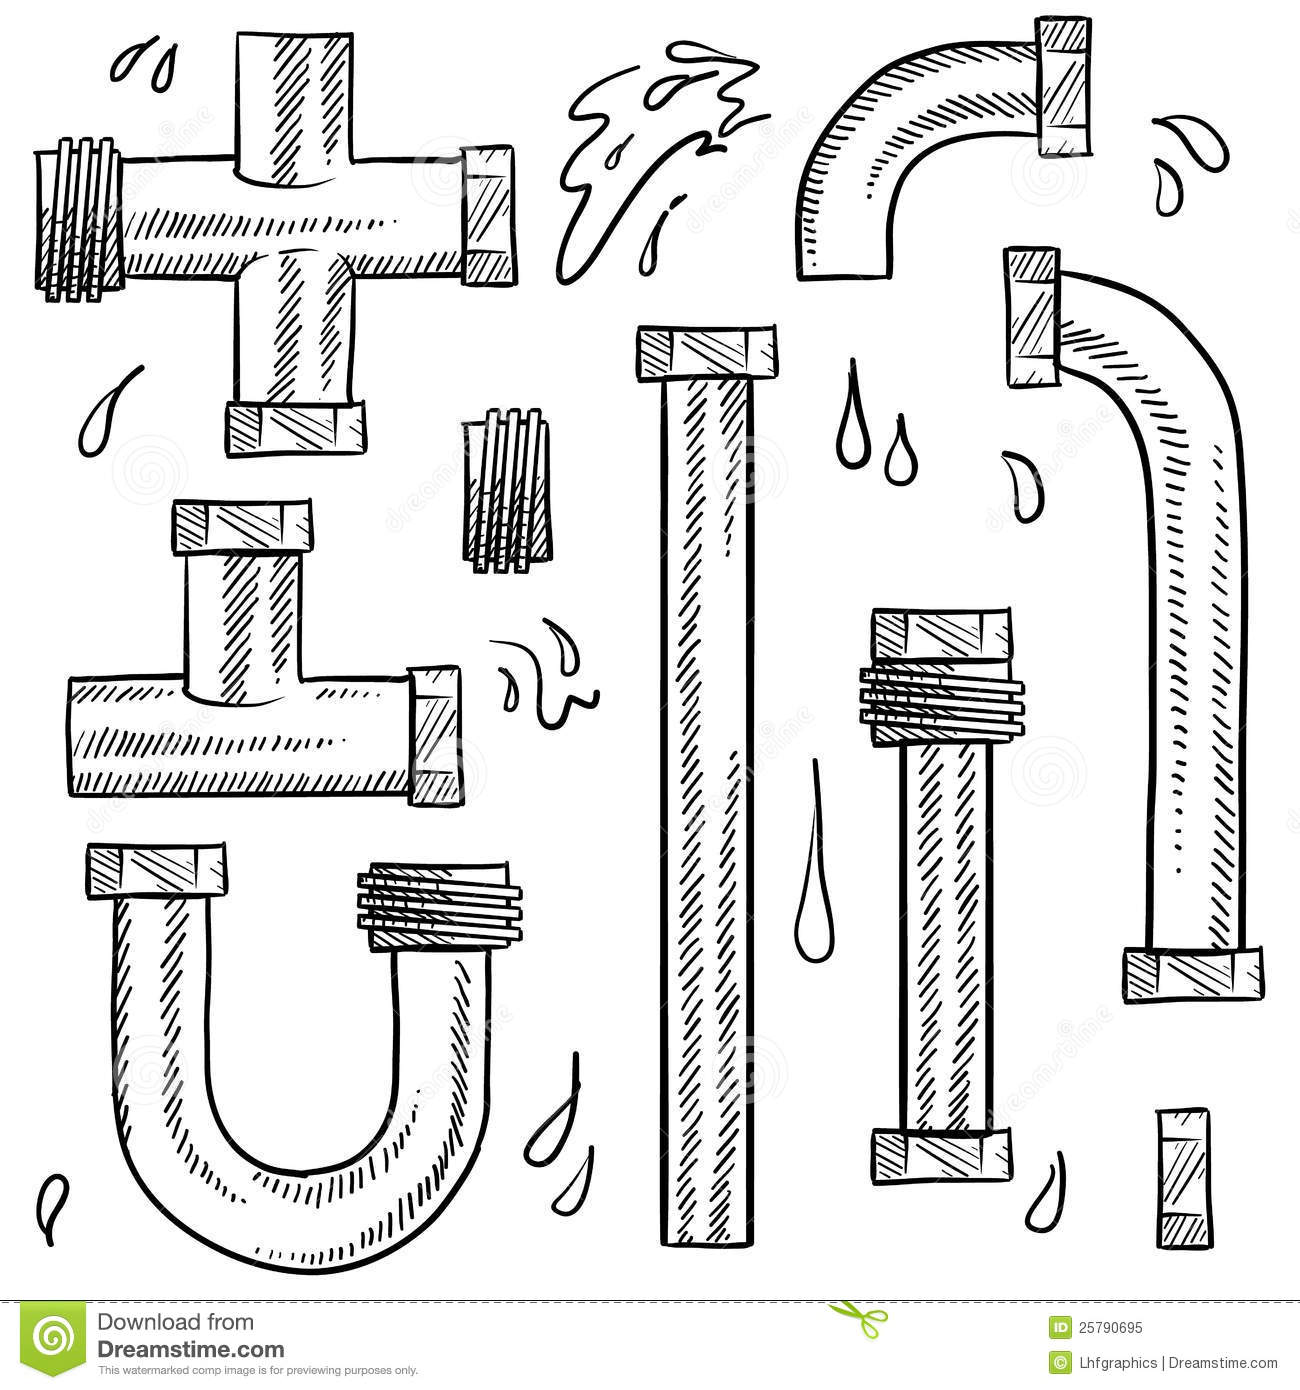 Water Pipes Sketch Royalty Free Stock Photo